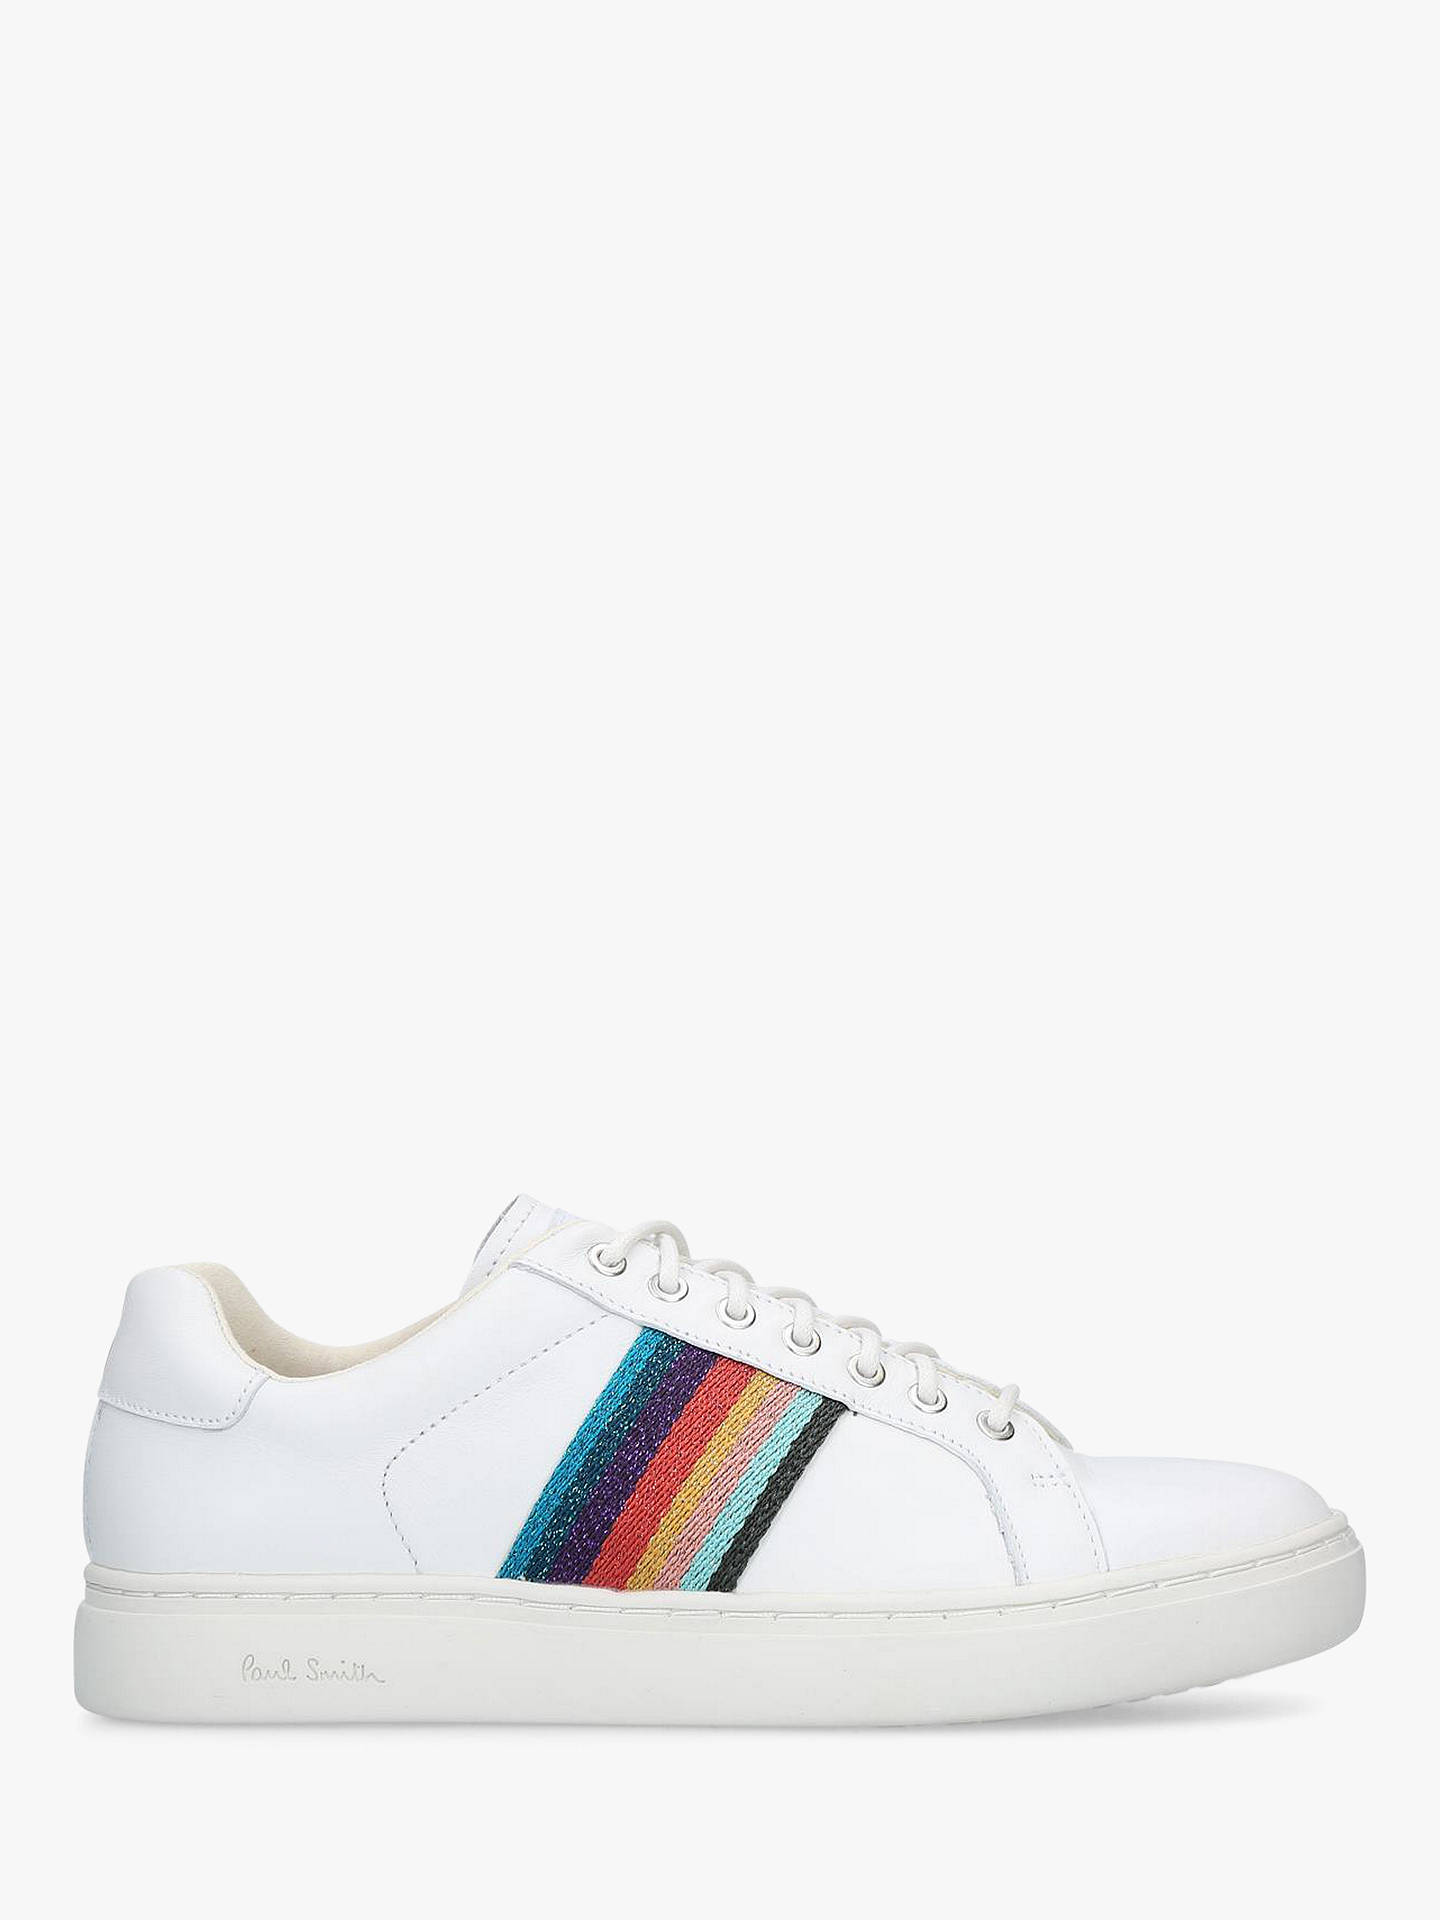 08e34df6342 Buy Paul Smith Lapin Stripe Lace Up Trainers